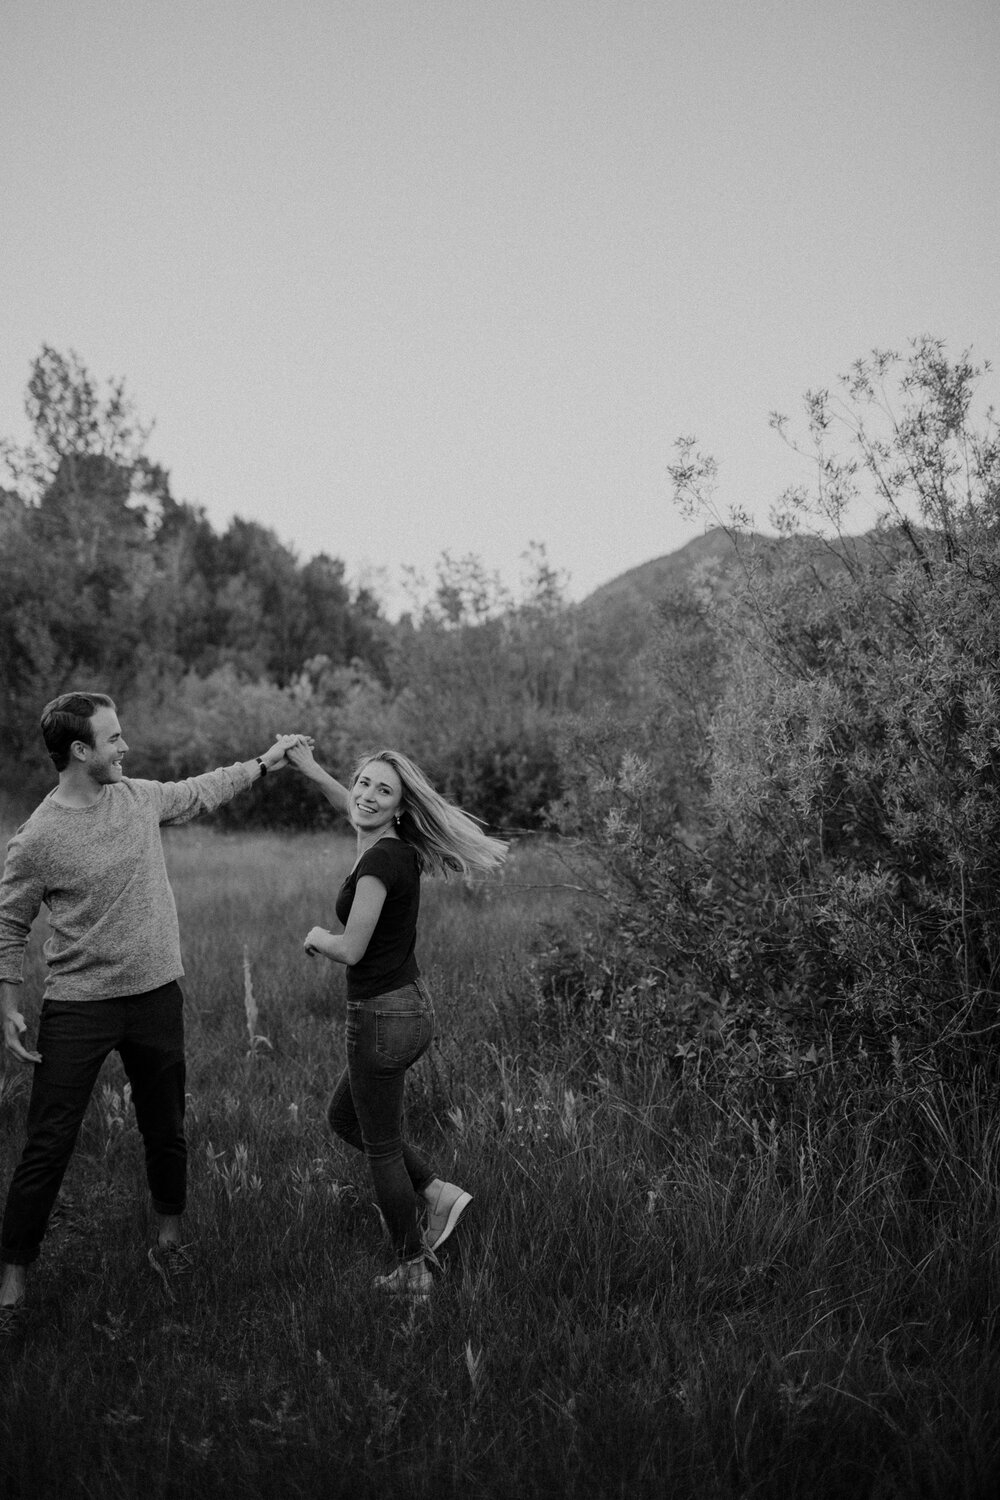 sun-valley-engagement-photos-christinemarie-57.jpg